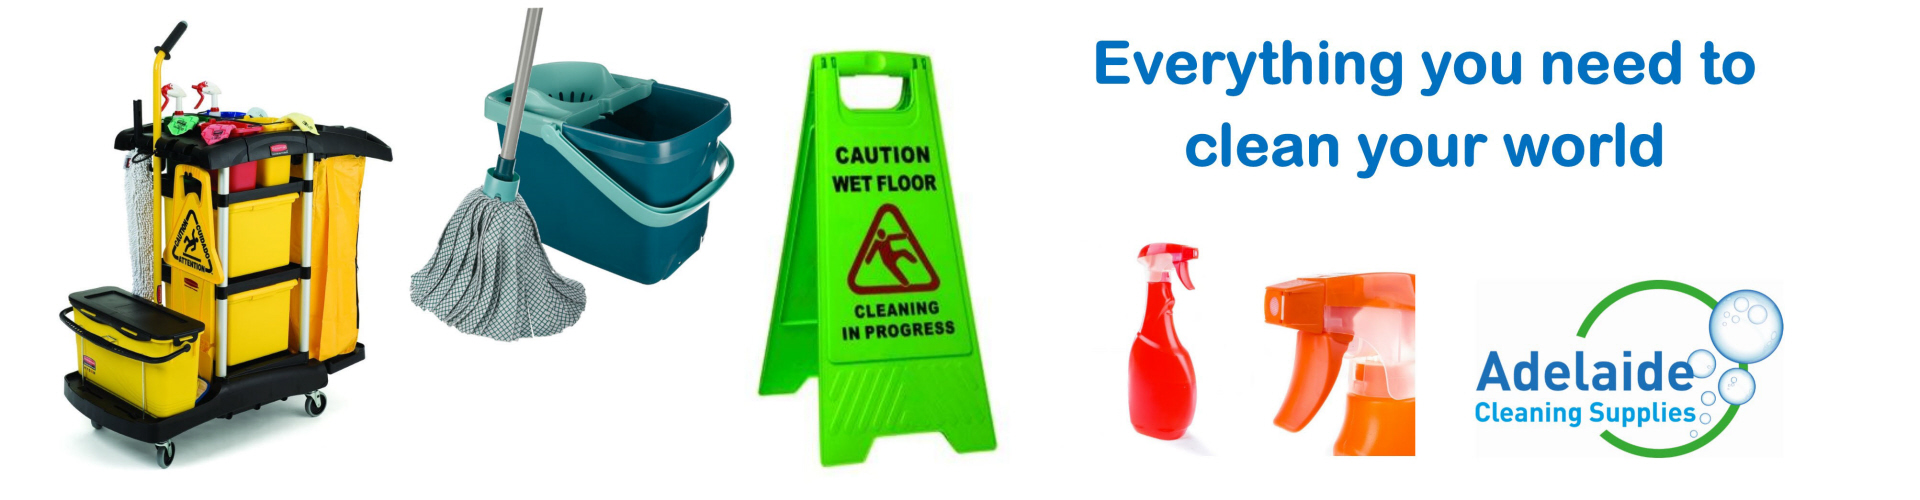 adelaide cleaning supplies